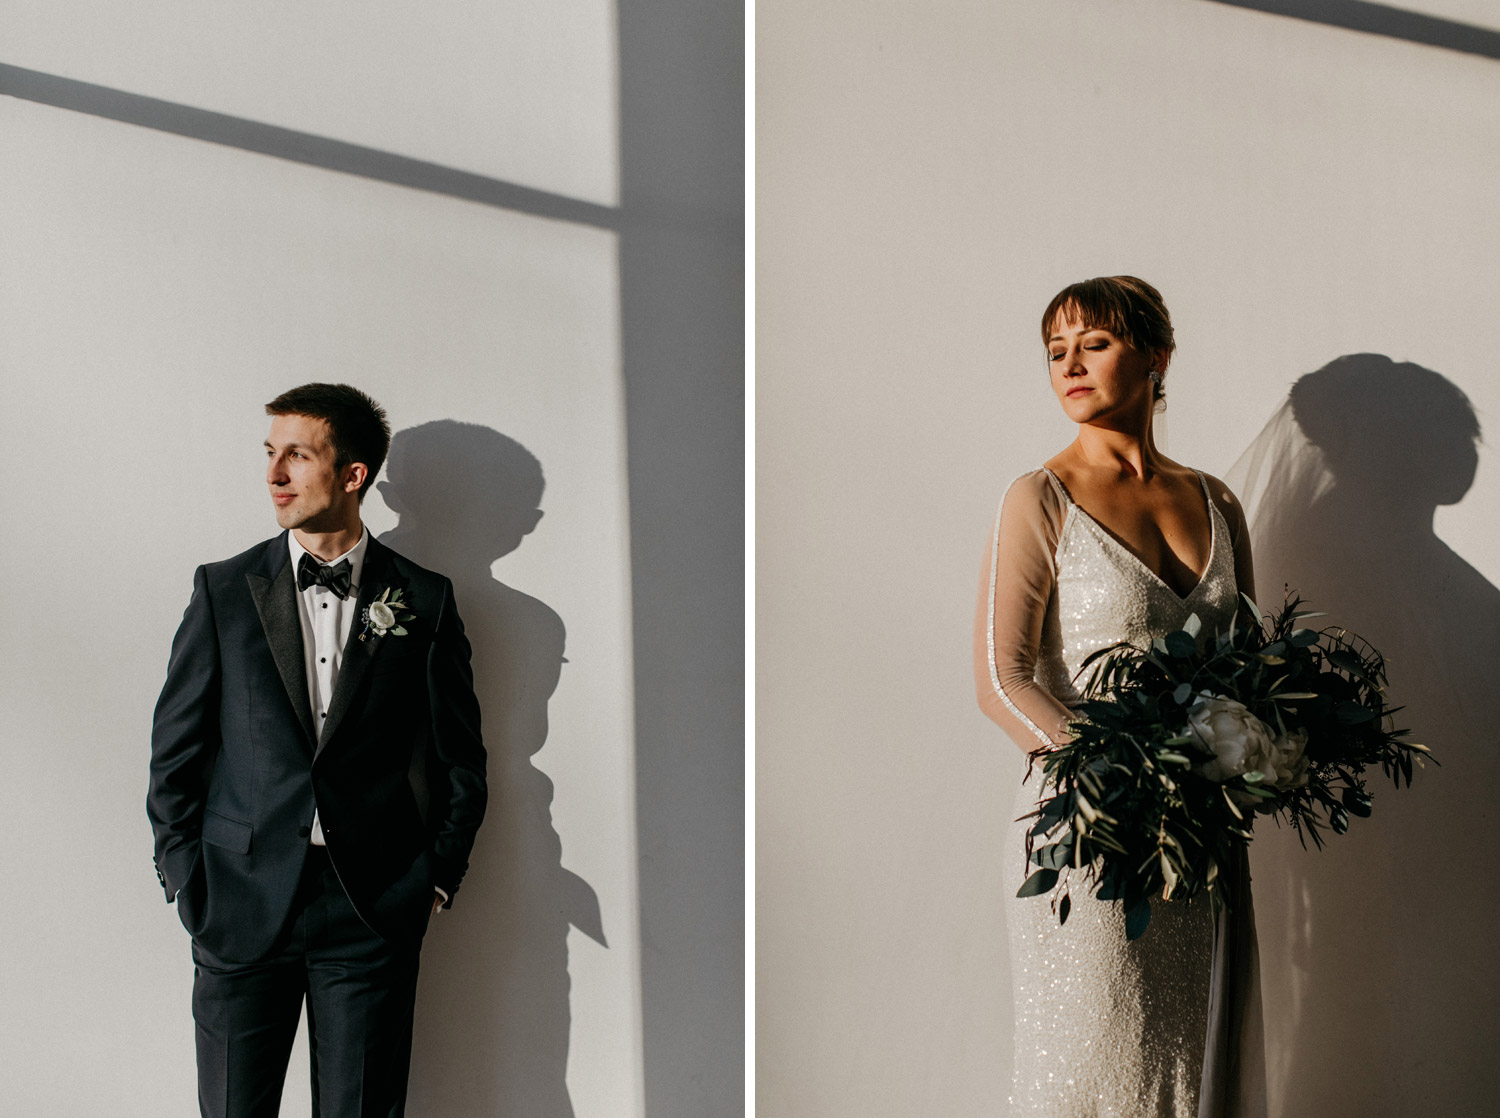 Walker Art Center Bride and Groom Portraits by geneoh photography